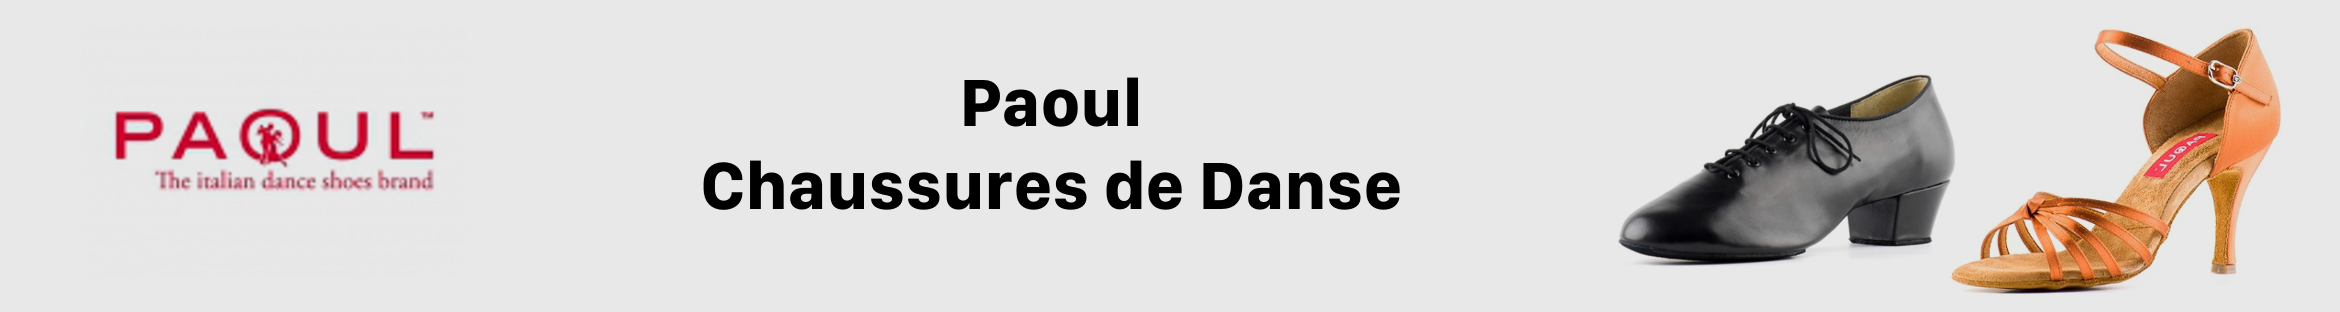 paoul-chaussures-danse.png